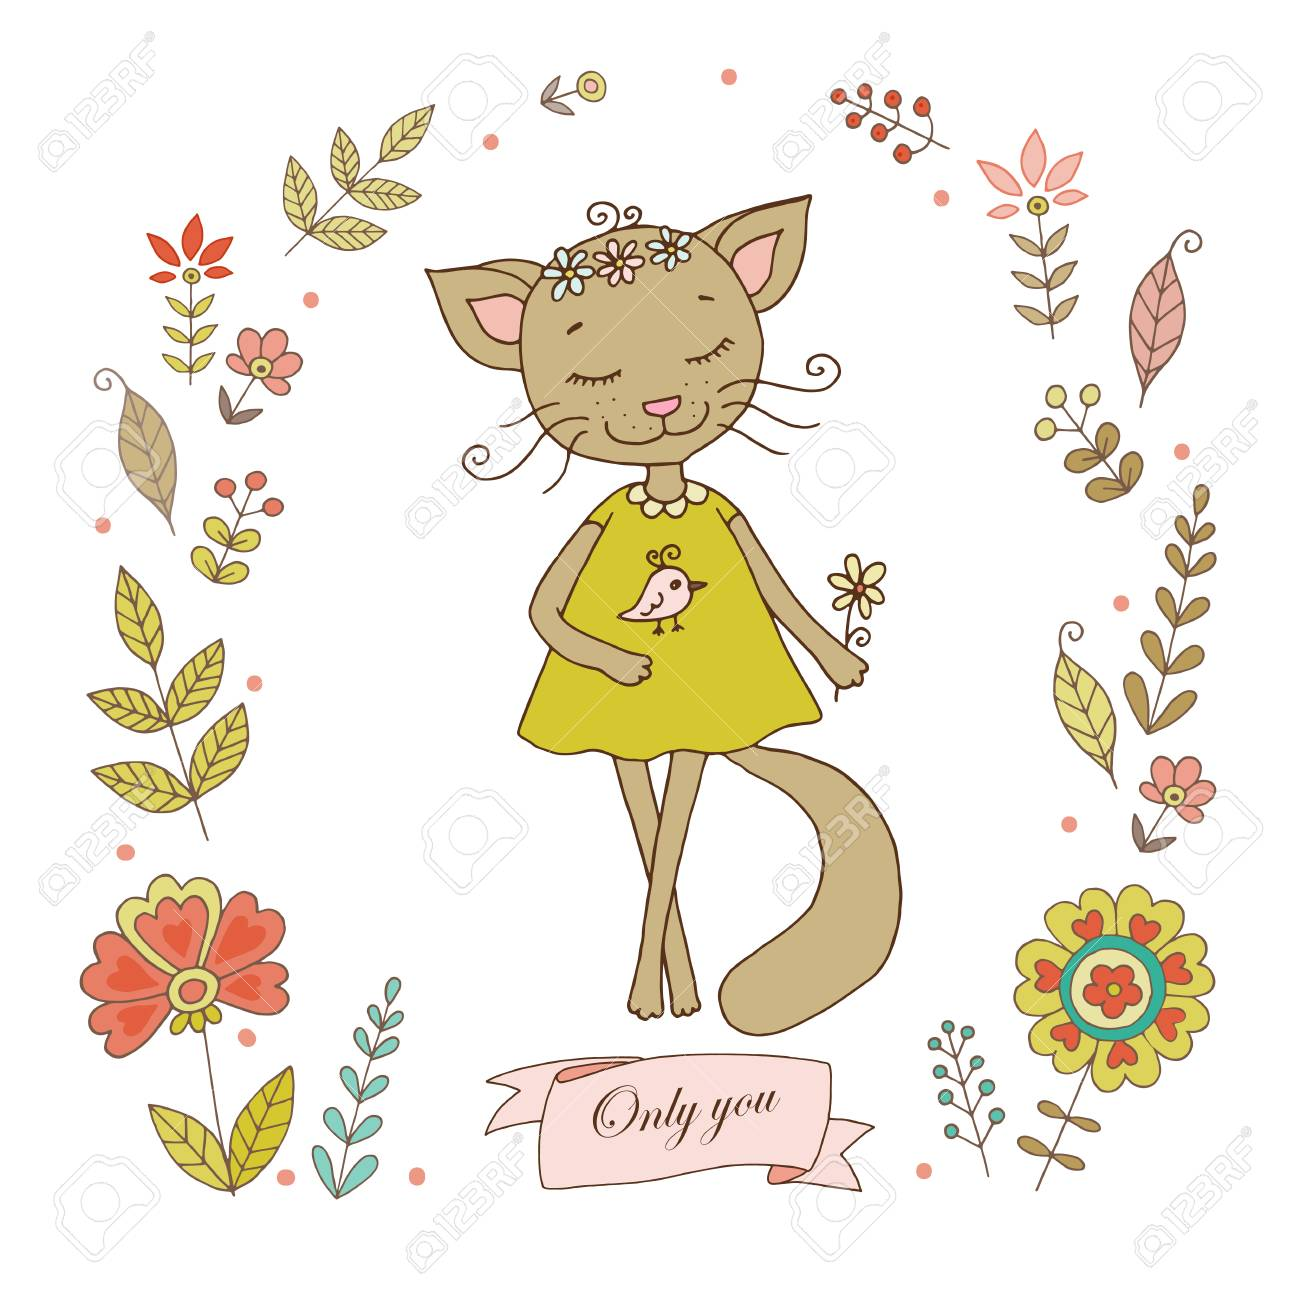 Cute Cat With Vintage Frame For Your Design In Doodle Style ...